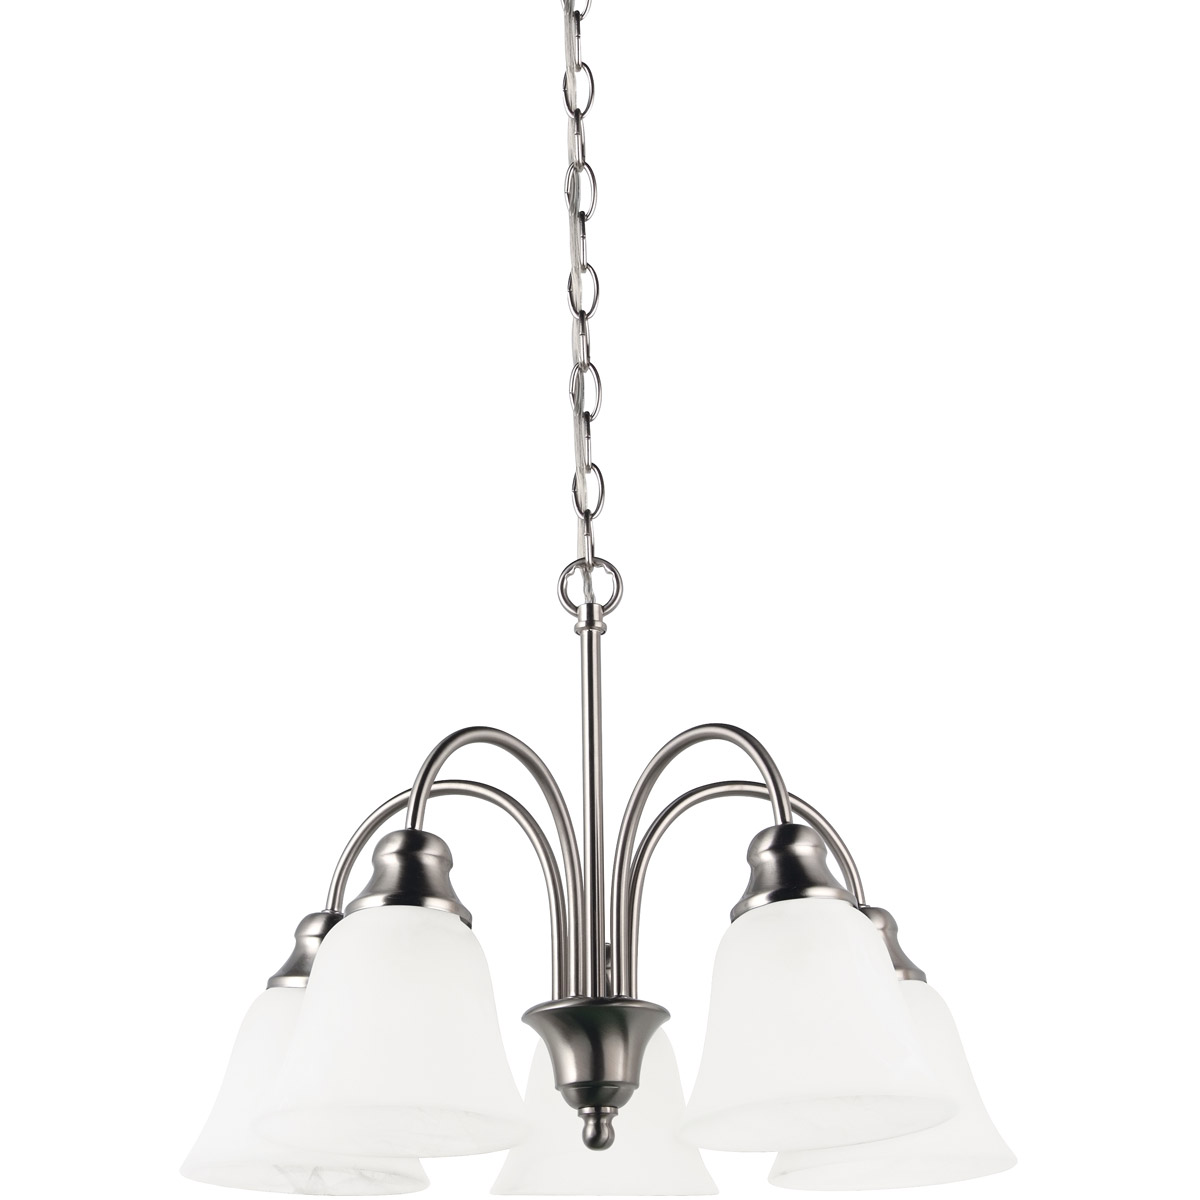 Sea Gull 35950-962 Windgate 5 Light 20 inch Brushed Nickel Chandelier Ceiling Light in Standard photo